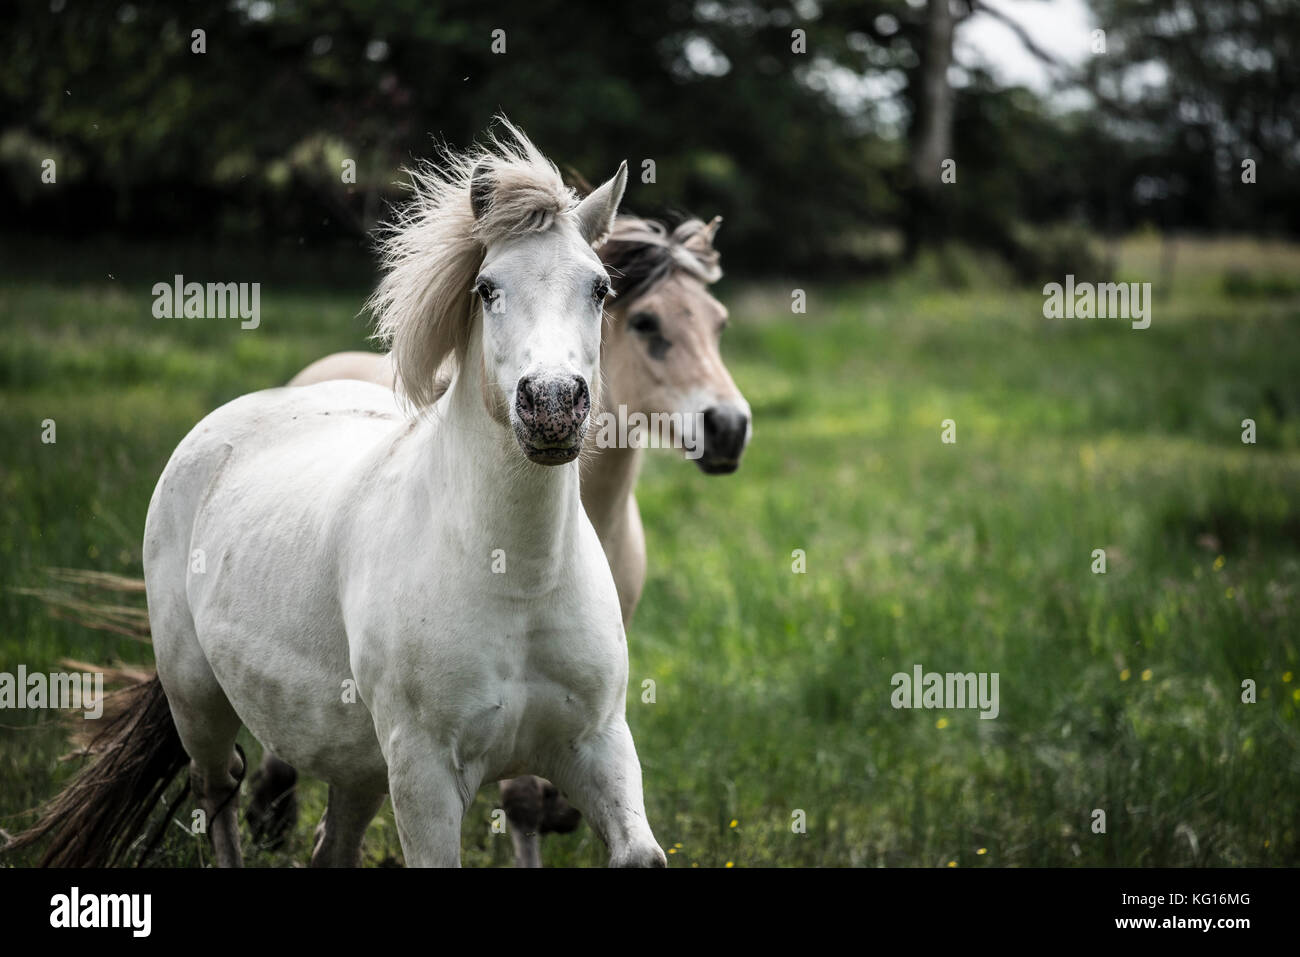 Horses running together at speed in the French countryside Stock Photo